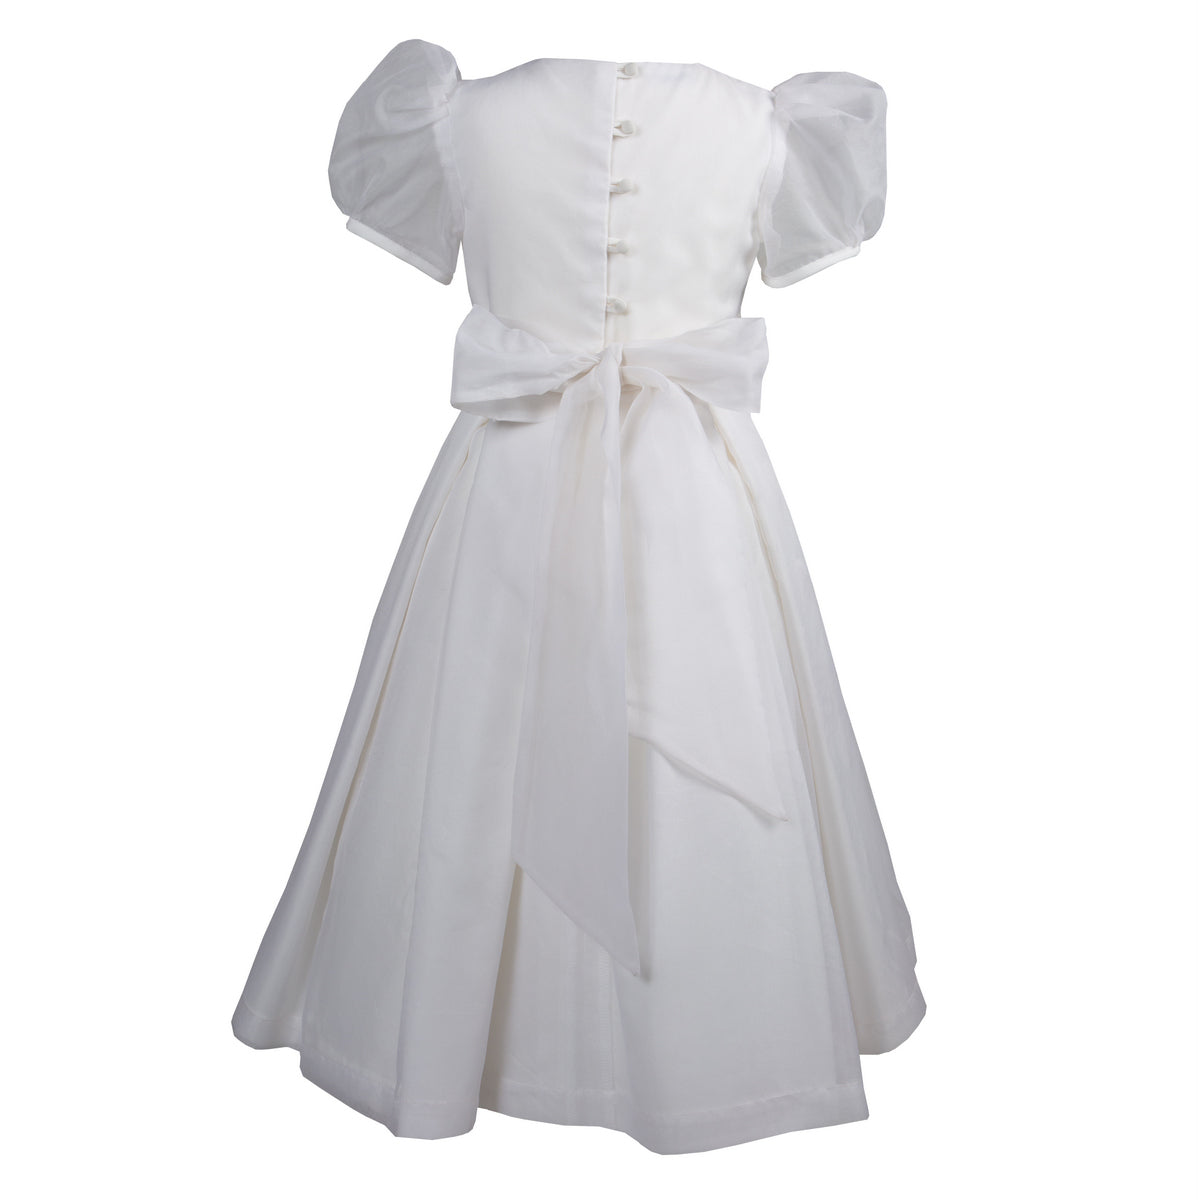 Sue Hill silk organza flower girl communion dress annabel